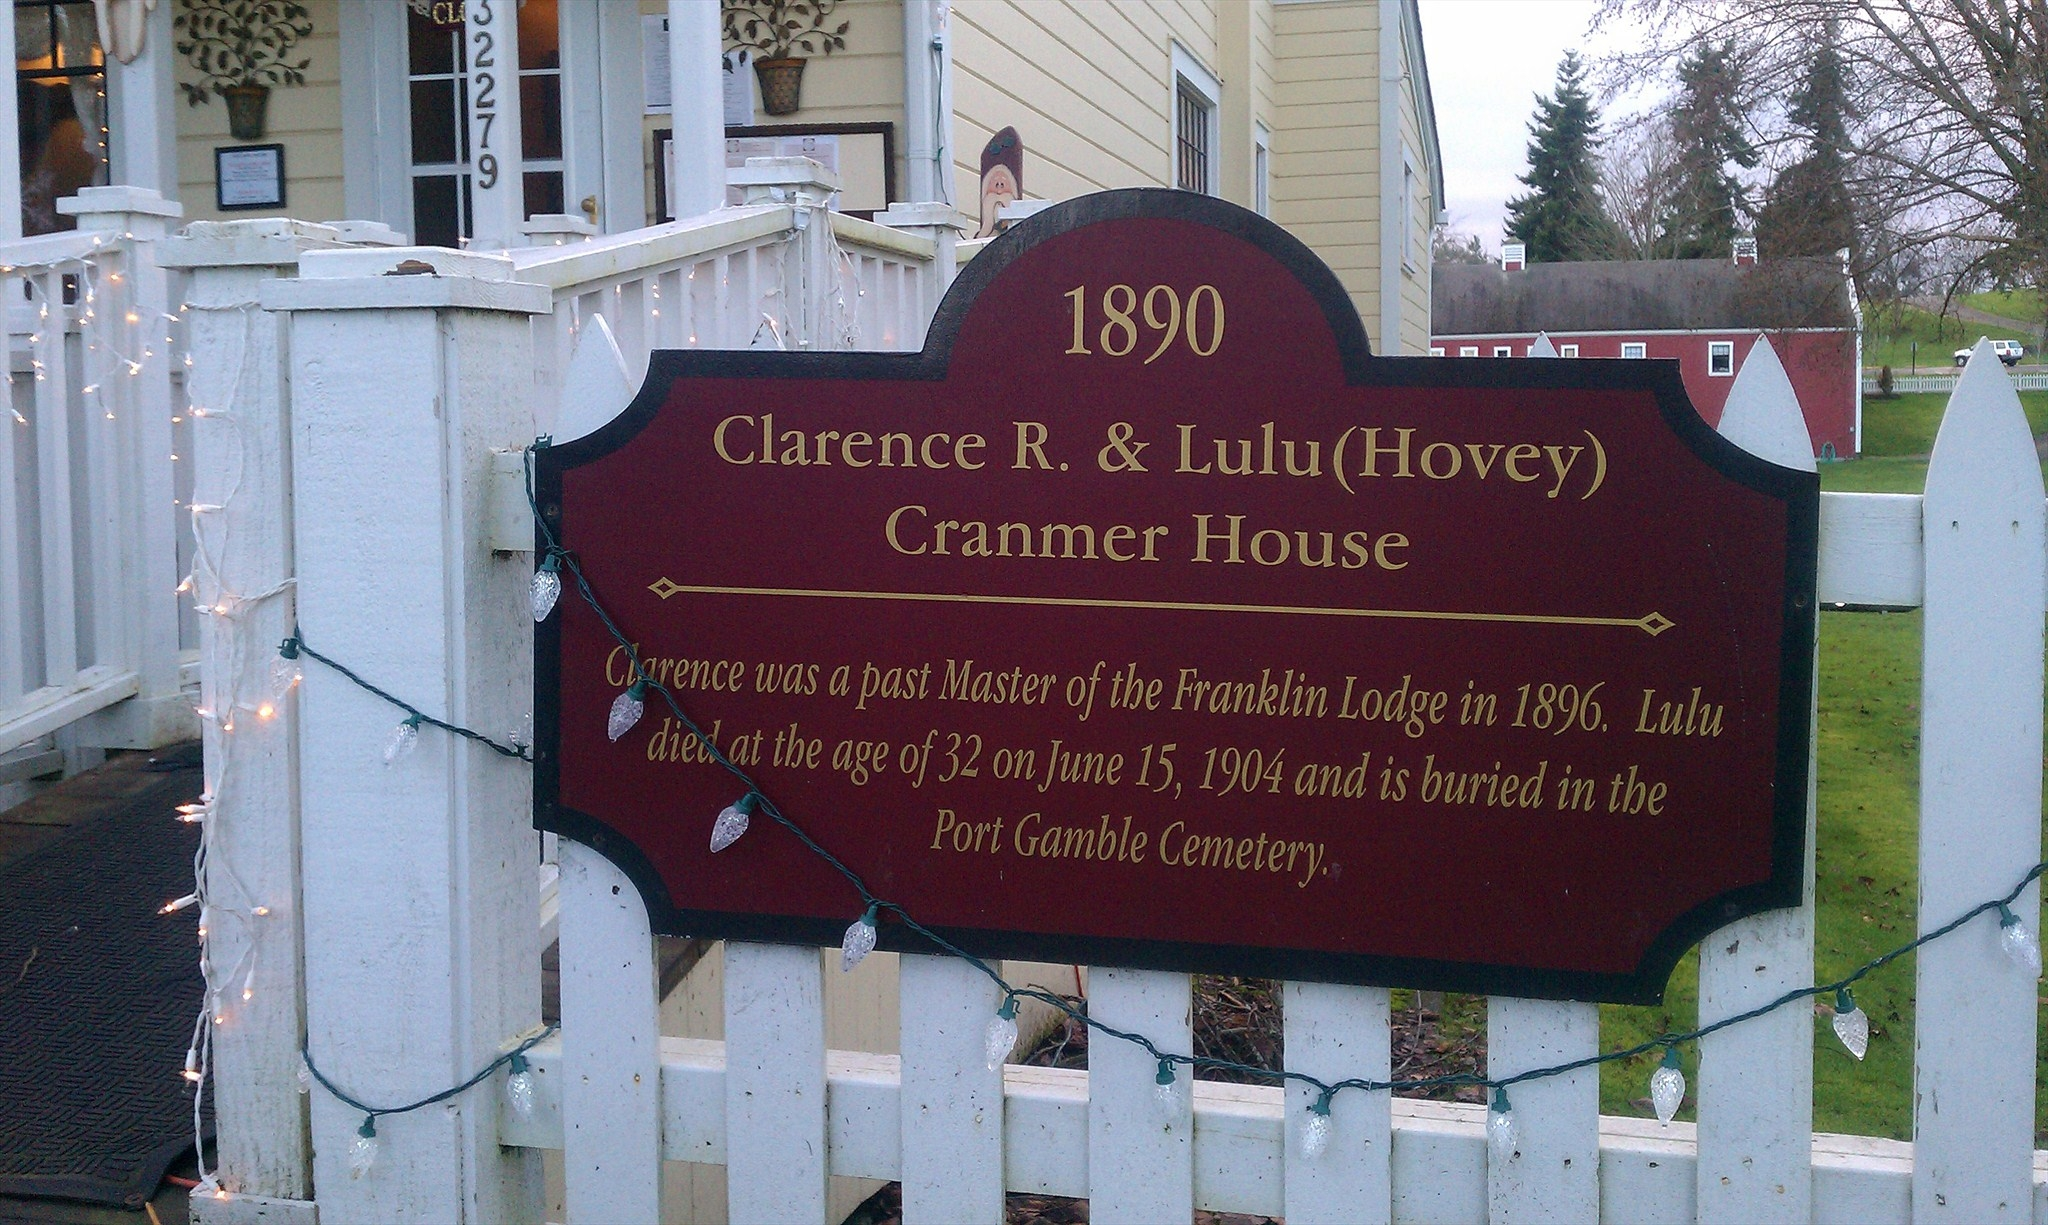 Clarence R. & Lulu (Hovey) Cranmer House Marker